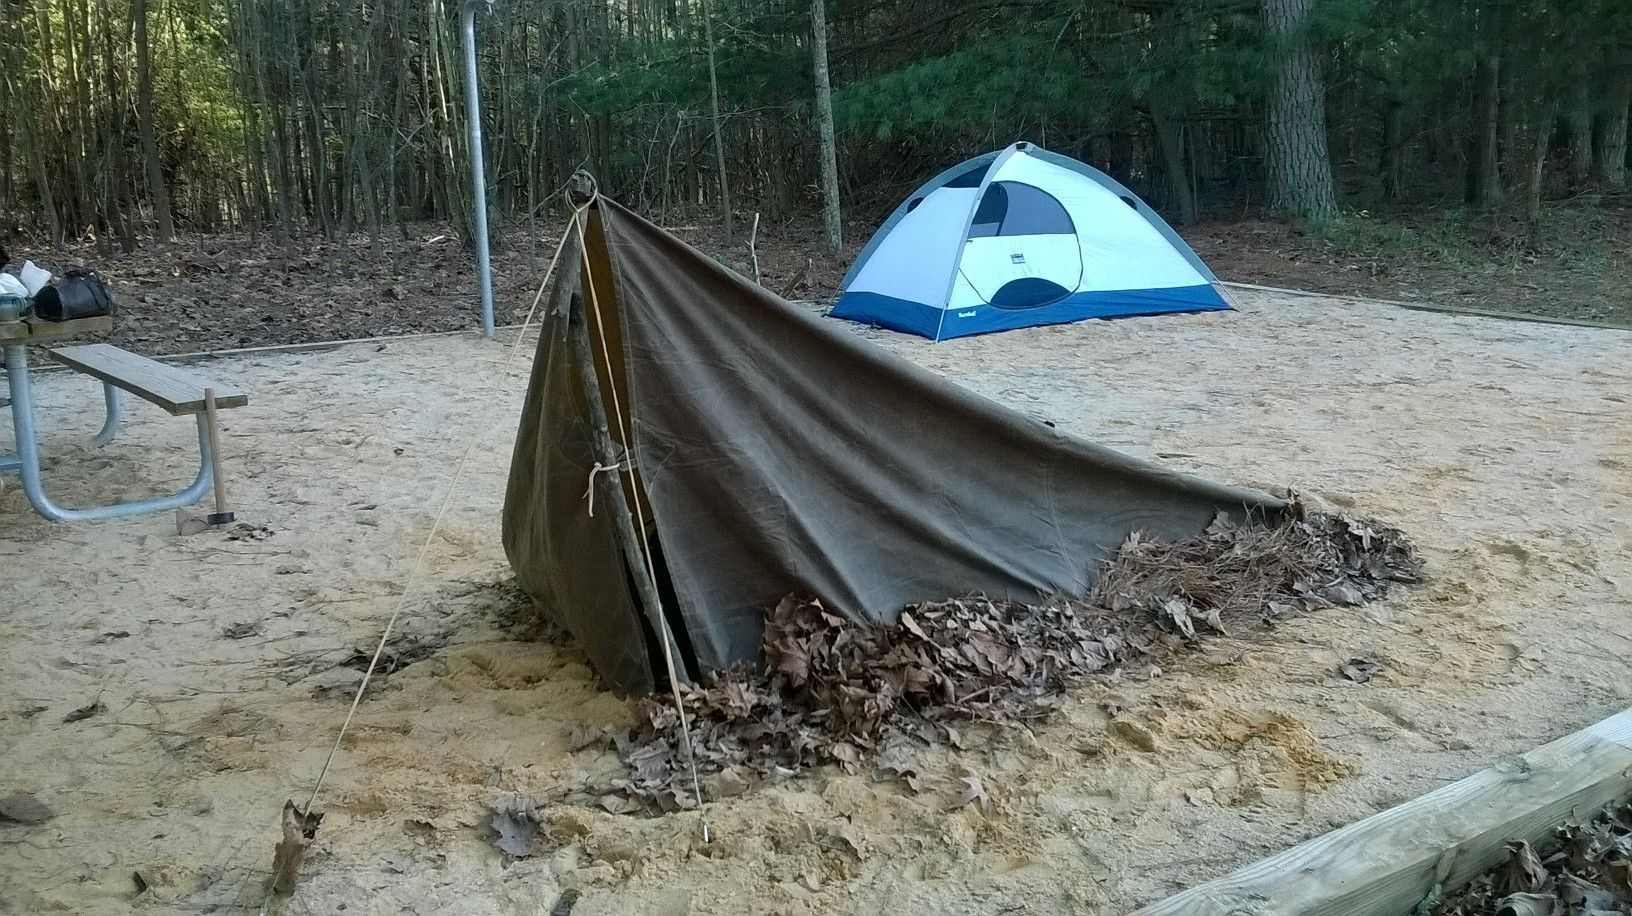 I was setting up on a sand tent pad so itu0027s not as taut as it could be if I had been able to tie off to trees. I piled leaves underneath ... & Tarp Configurations - Middle Earth Ranger Forum